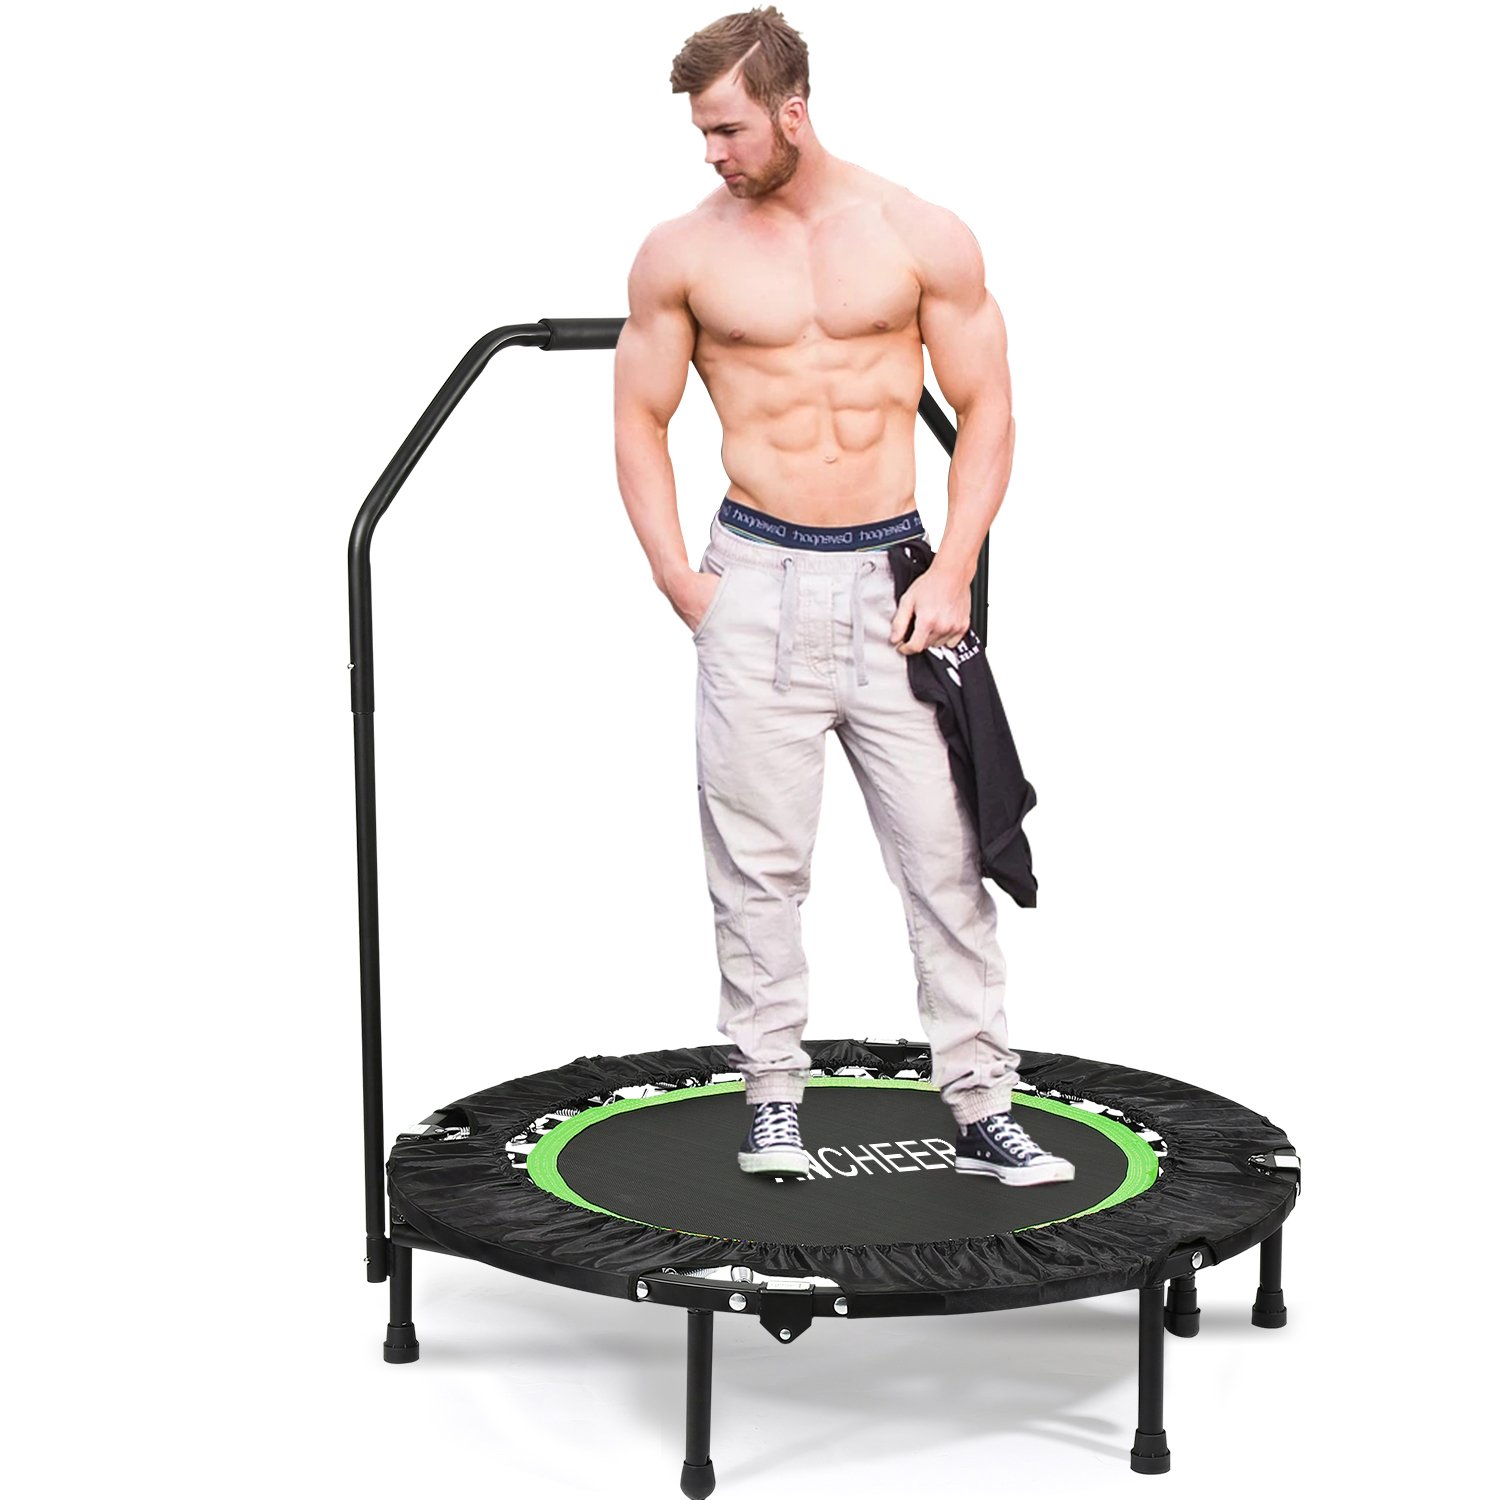 ANCHEER Fitness Exercise Trampoline with Handle Bar, 40'' Foldable Rebounder Cardio Workout Training for Adults or Kids (Max. Load 300lbs, Zero Stretch Jump Mat) (Green)